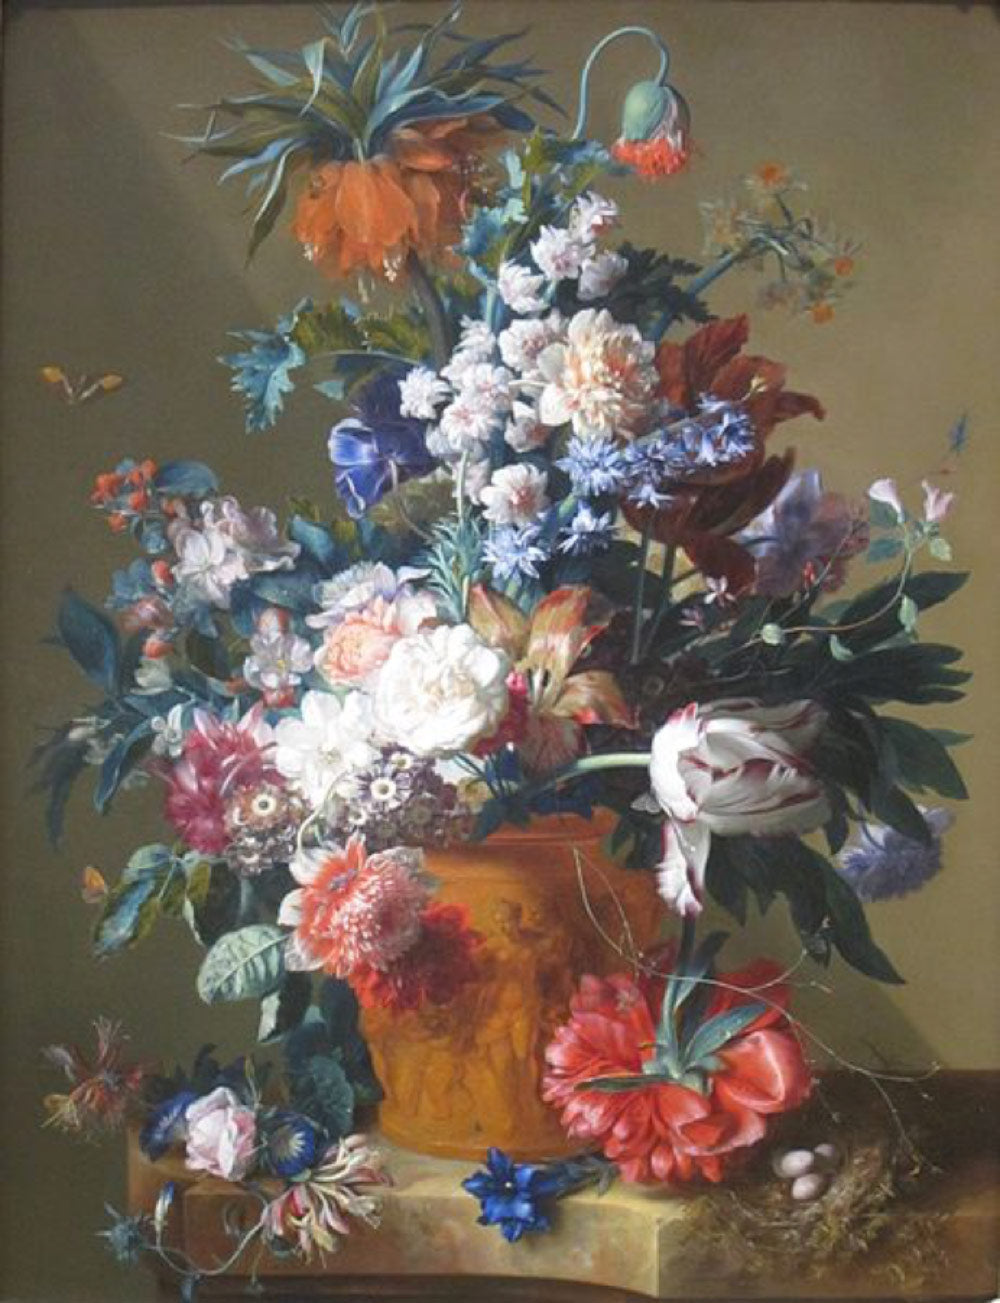 Jan van Huysum painting of flowers